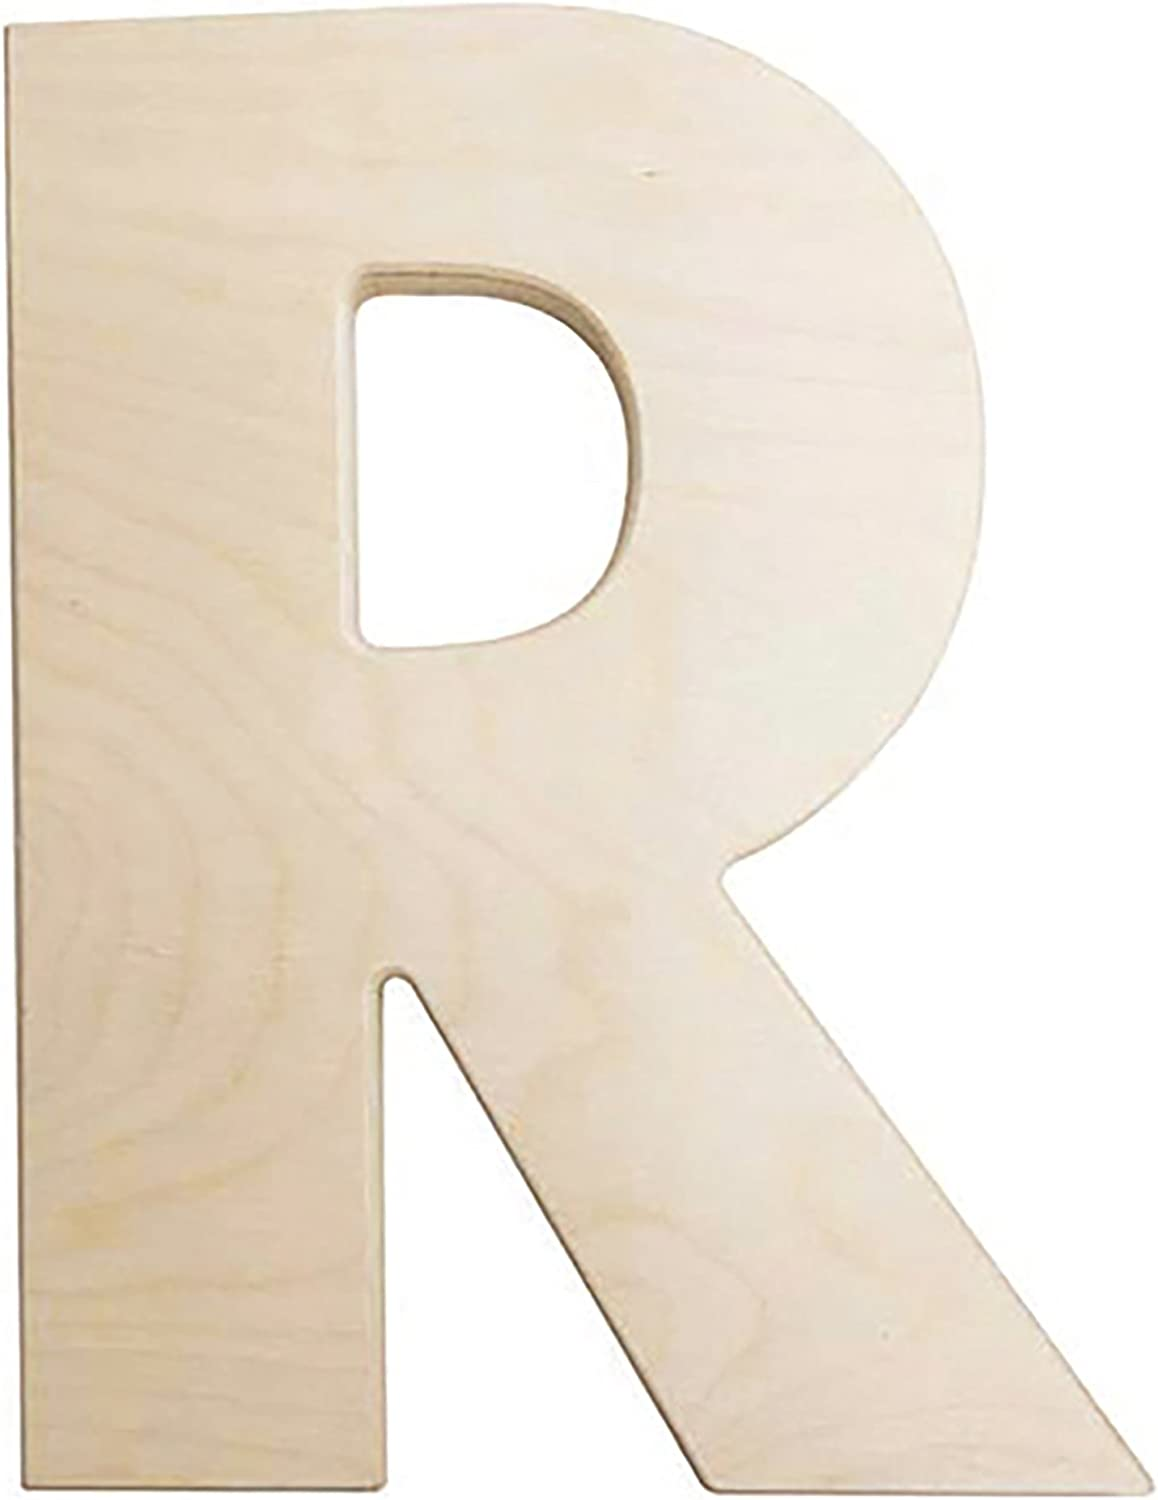 Darice U0993-R Bold Solid Wood Letter, Capital R, 12 in